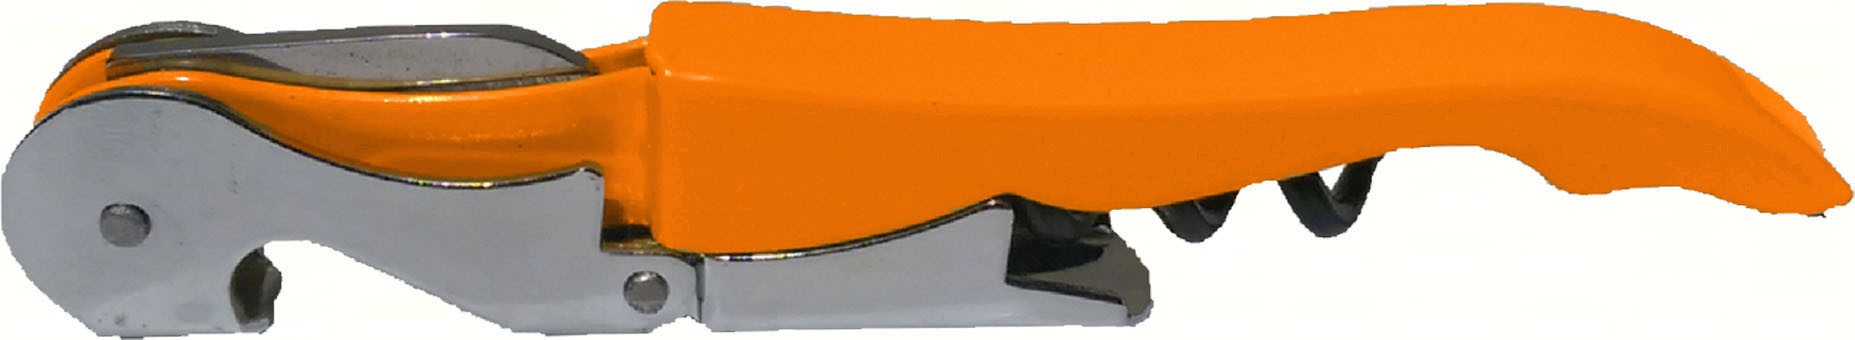 Orange Unprinted Corkscrew